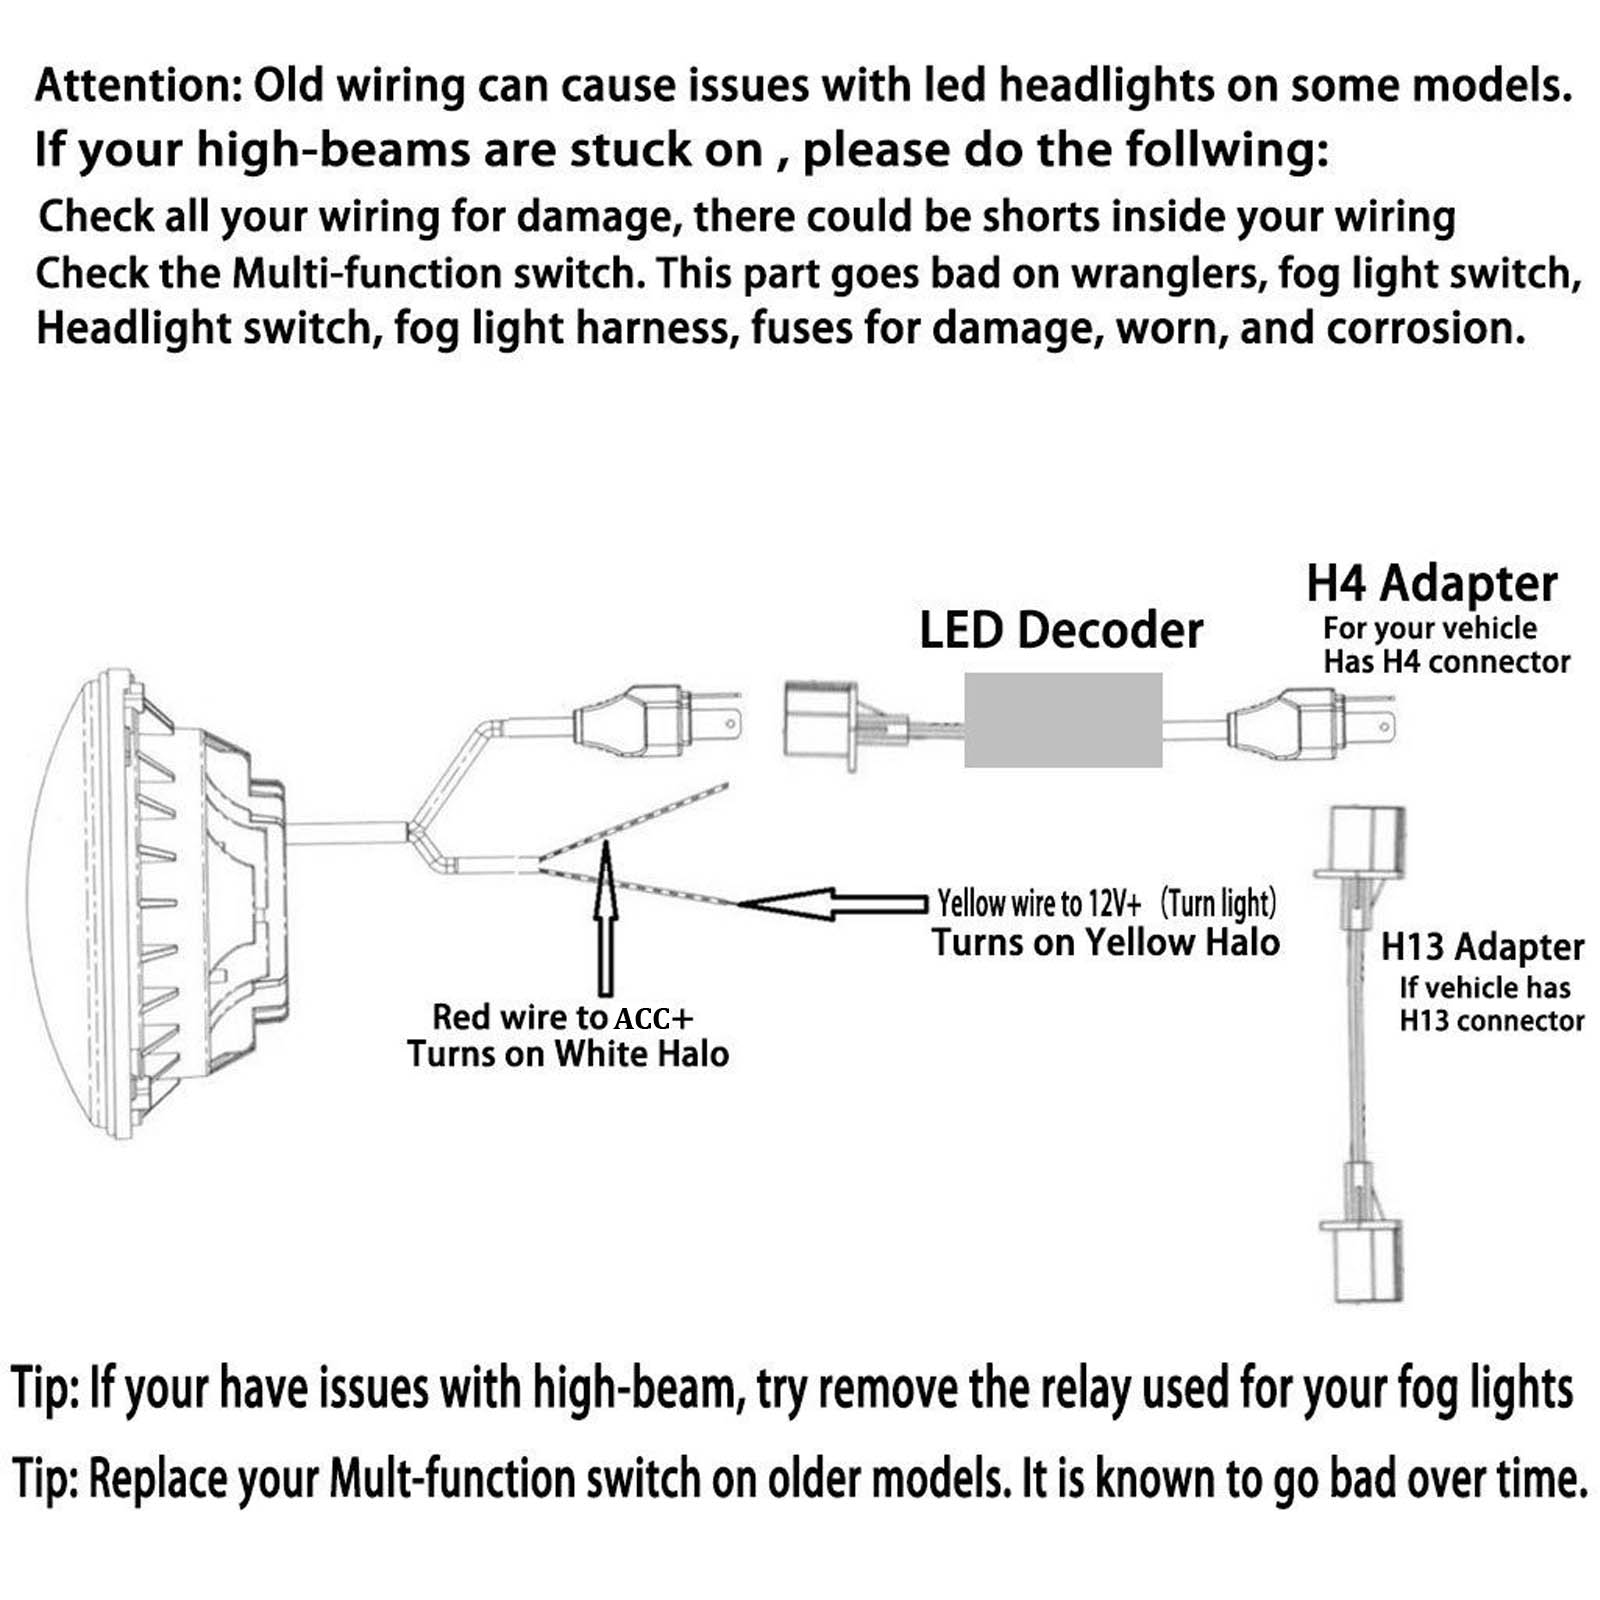 halo fog lights wiring diagram for jeep liberty patriot cj5/7 7